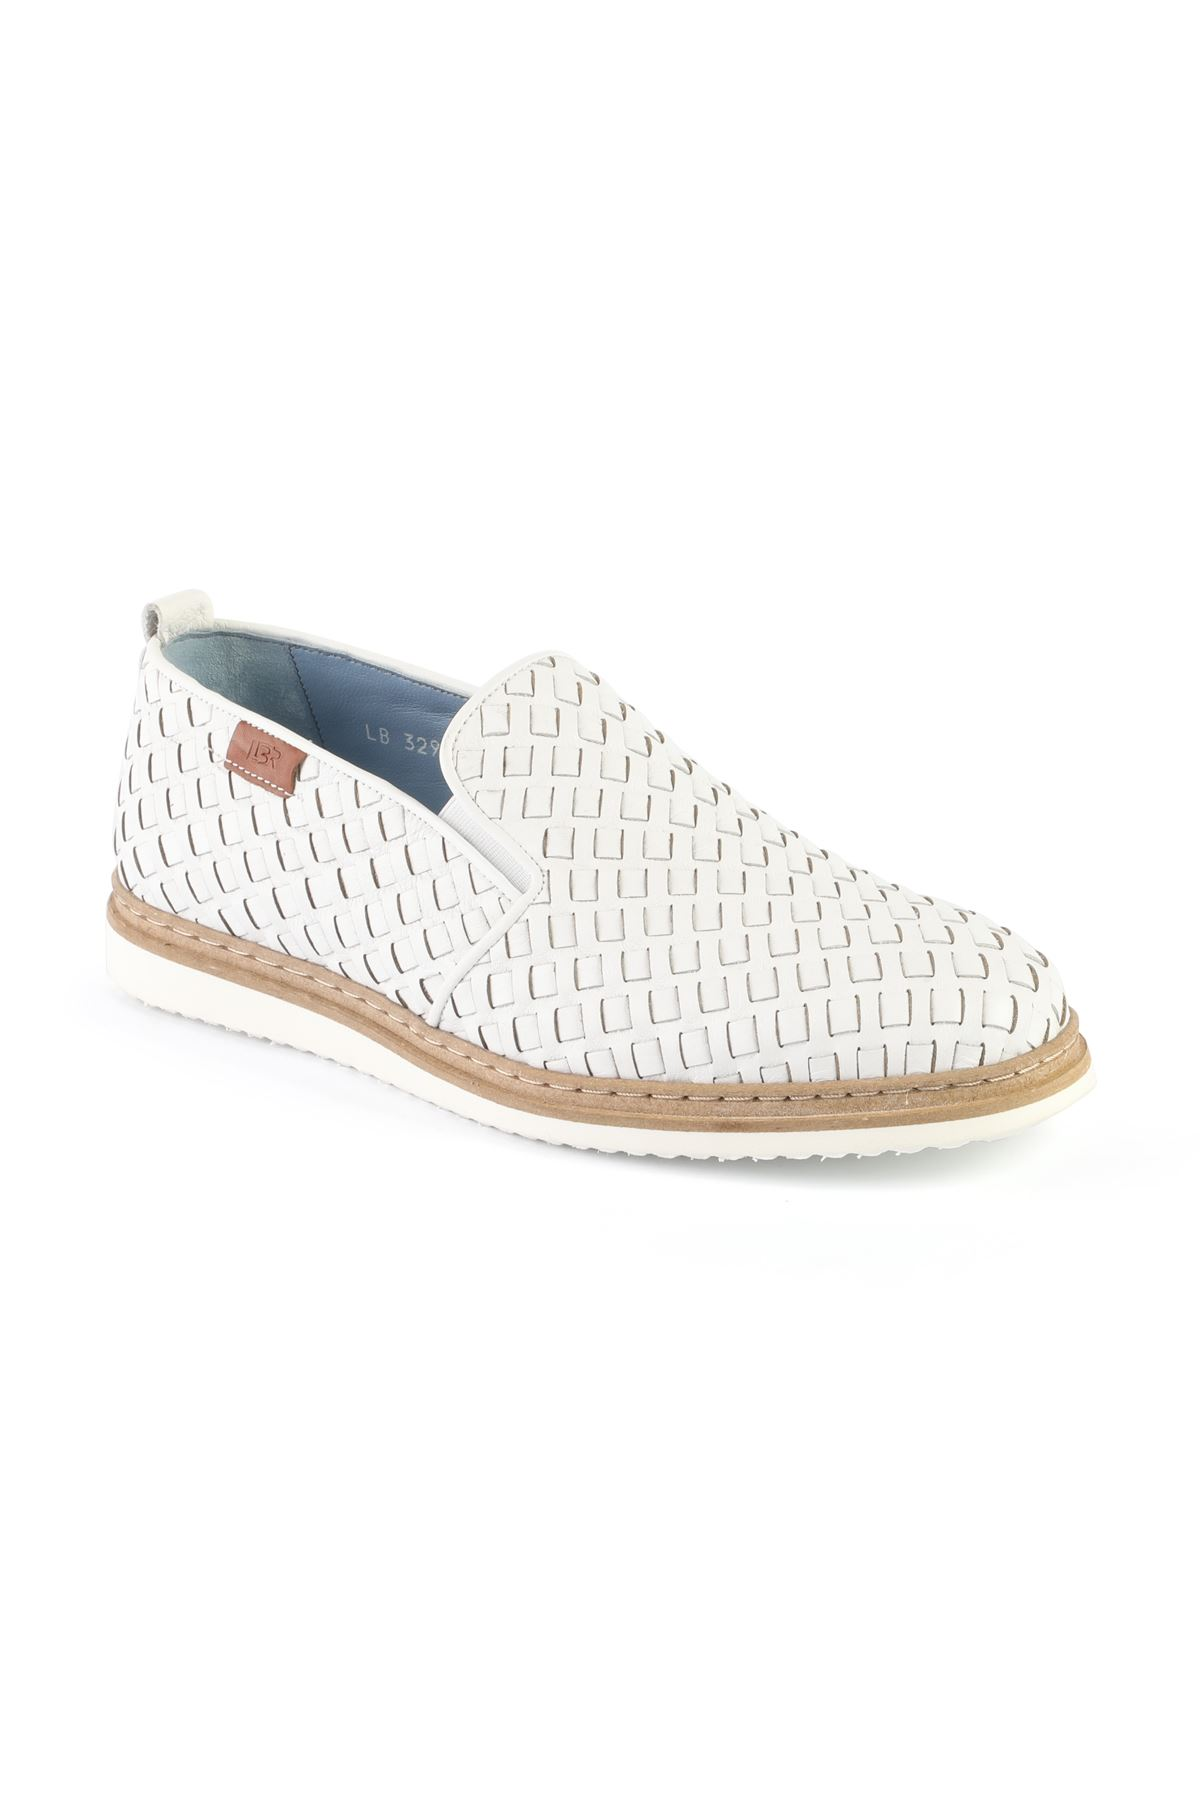 Libero L3295 White Loafer Shoes